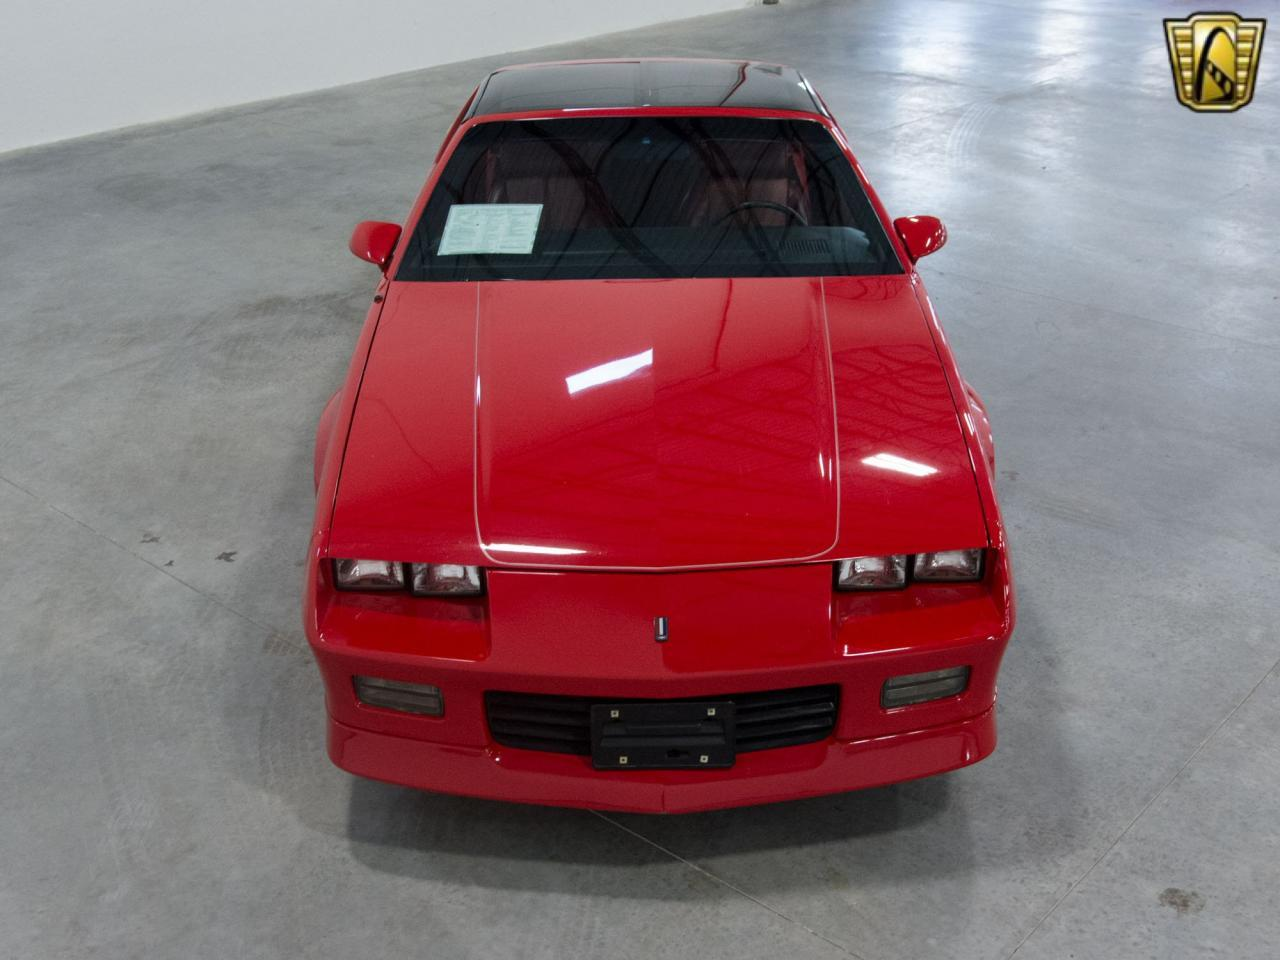 Large Picture of '89 Camaro located in Wisconsin - $17,995.00 Offered by Gateway Classic Cars - Milwaukee - KE4I